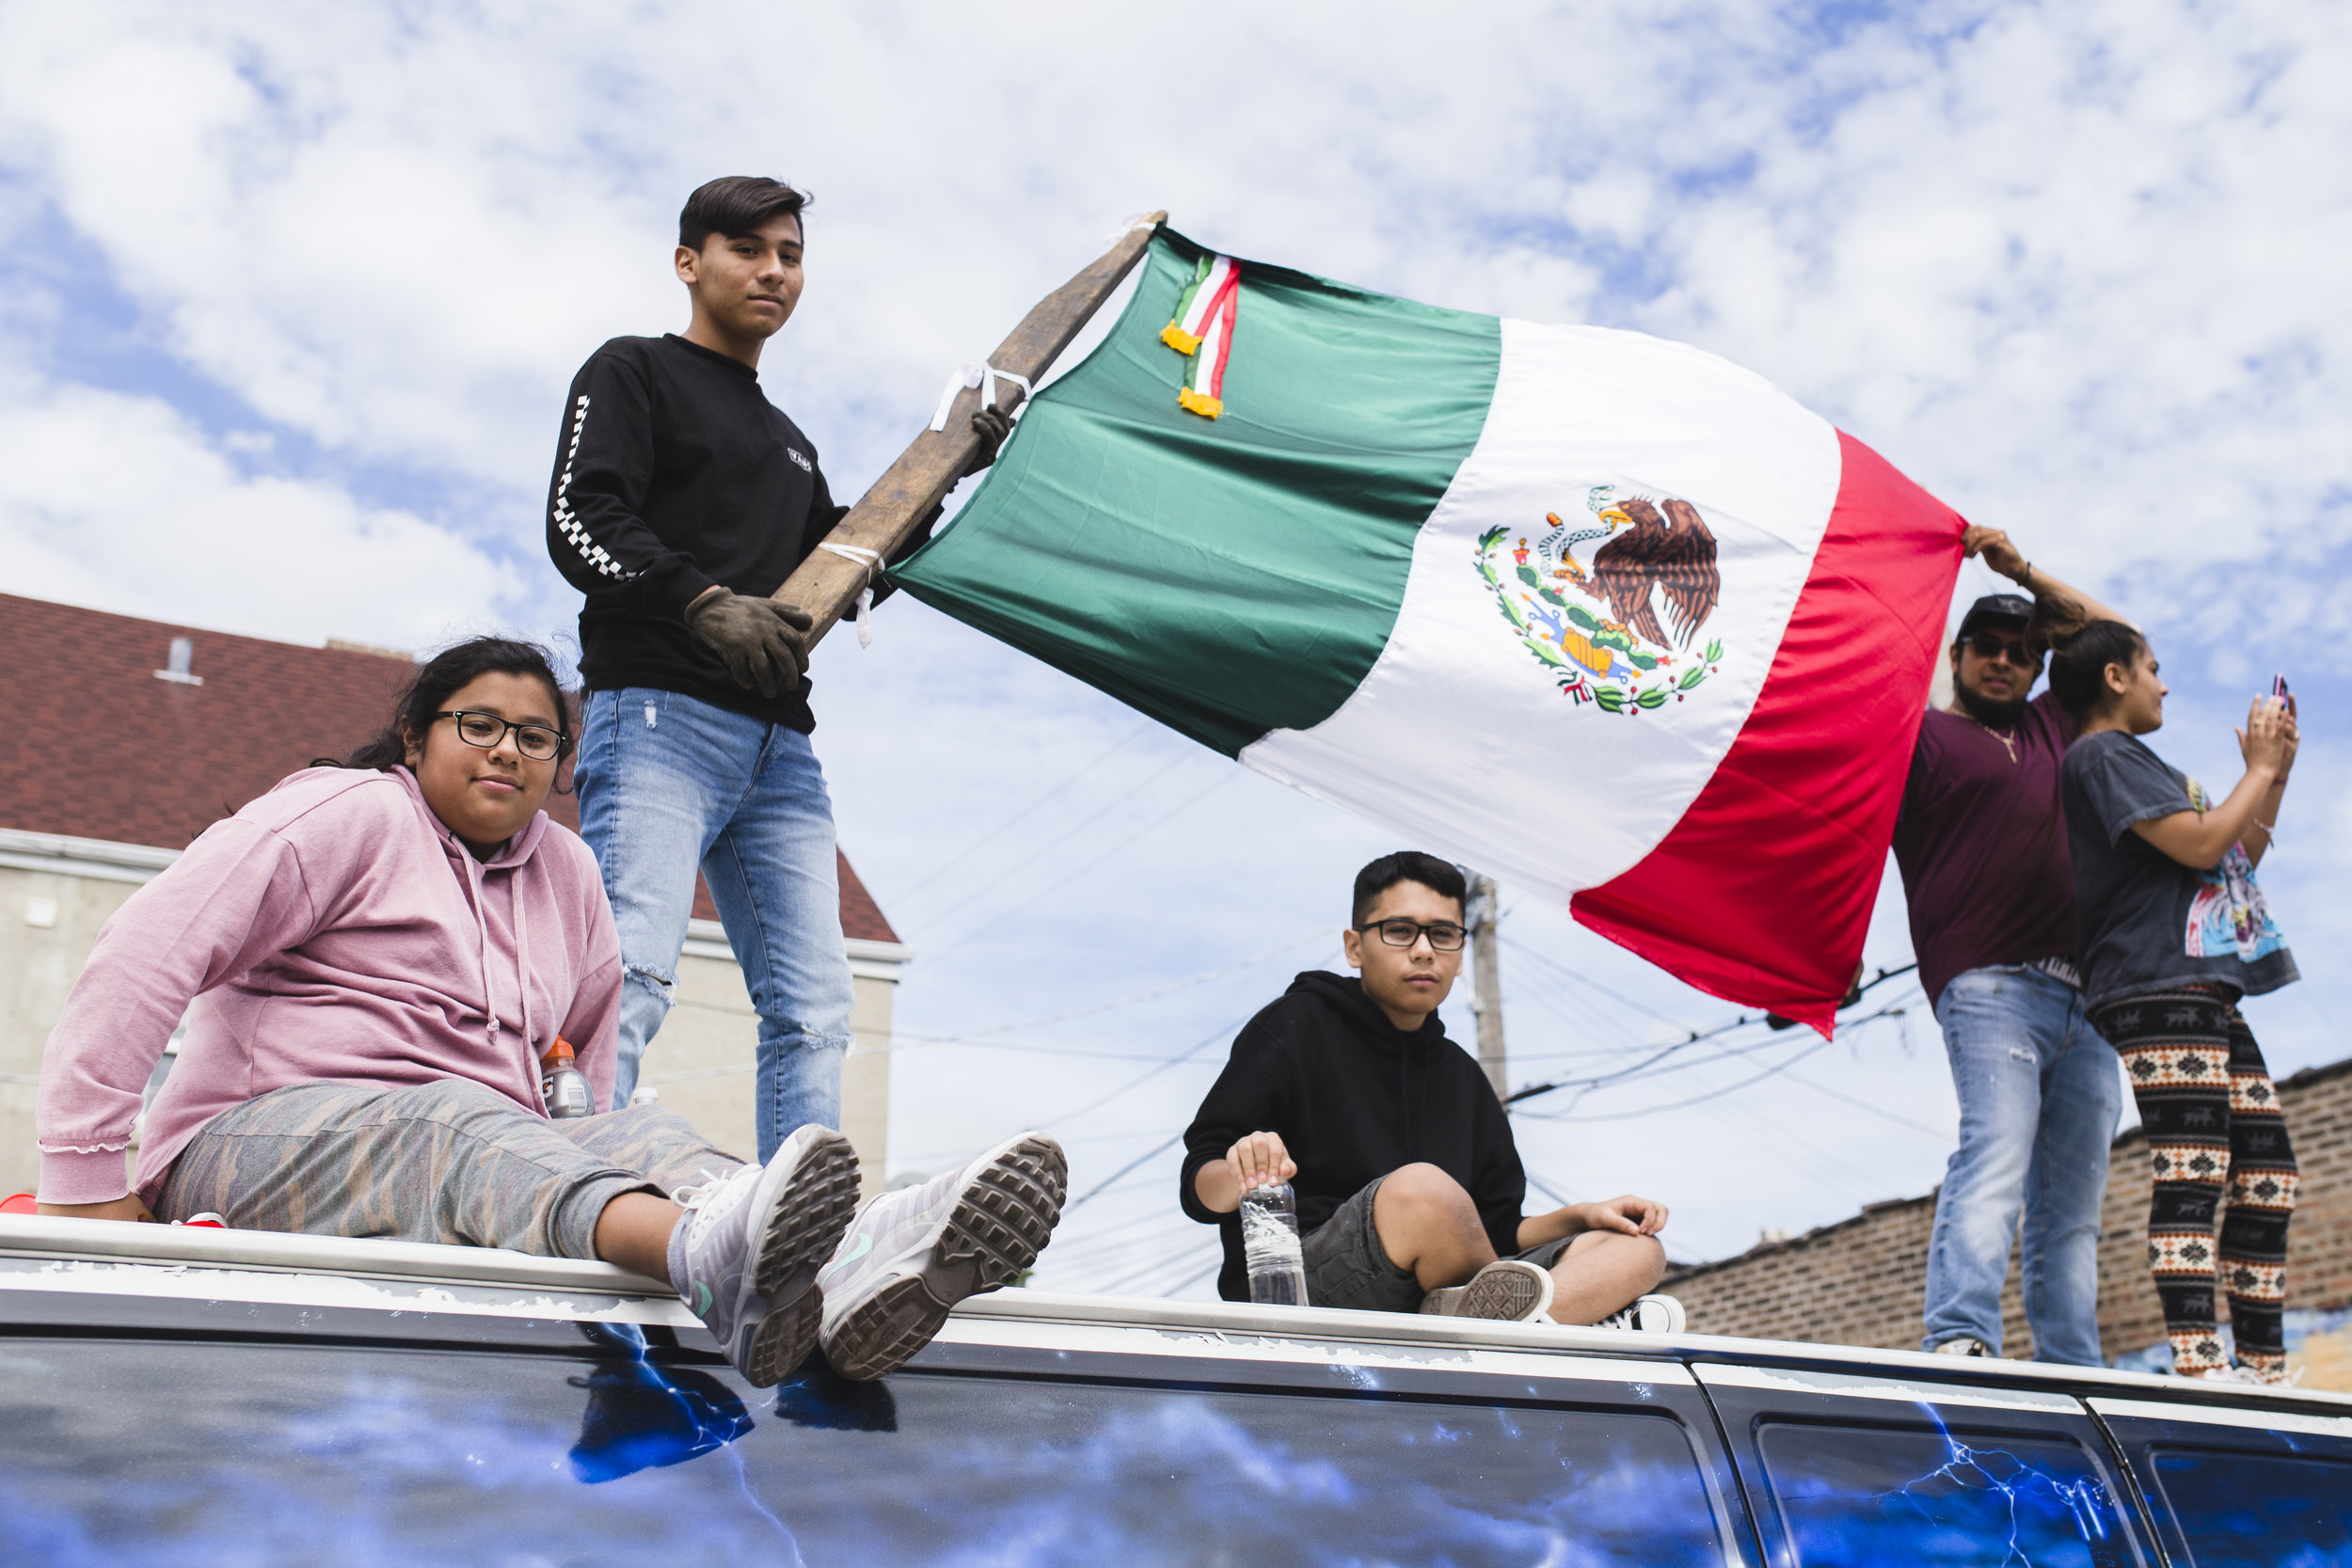 """Lupe Reyes' kids watch the parade from on top of a van. """"We do it every year, come celebrate, you know, our heritage, our blood,"""" said Reyes. """"Twenty-sixth Street, born and raised. I mean, what else can we ask for, you know? [I'm] having a good time. [I] can't wait for next year."""""""